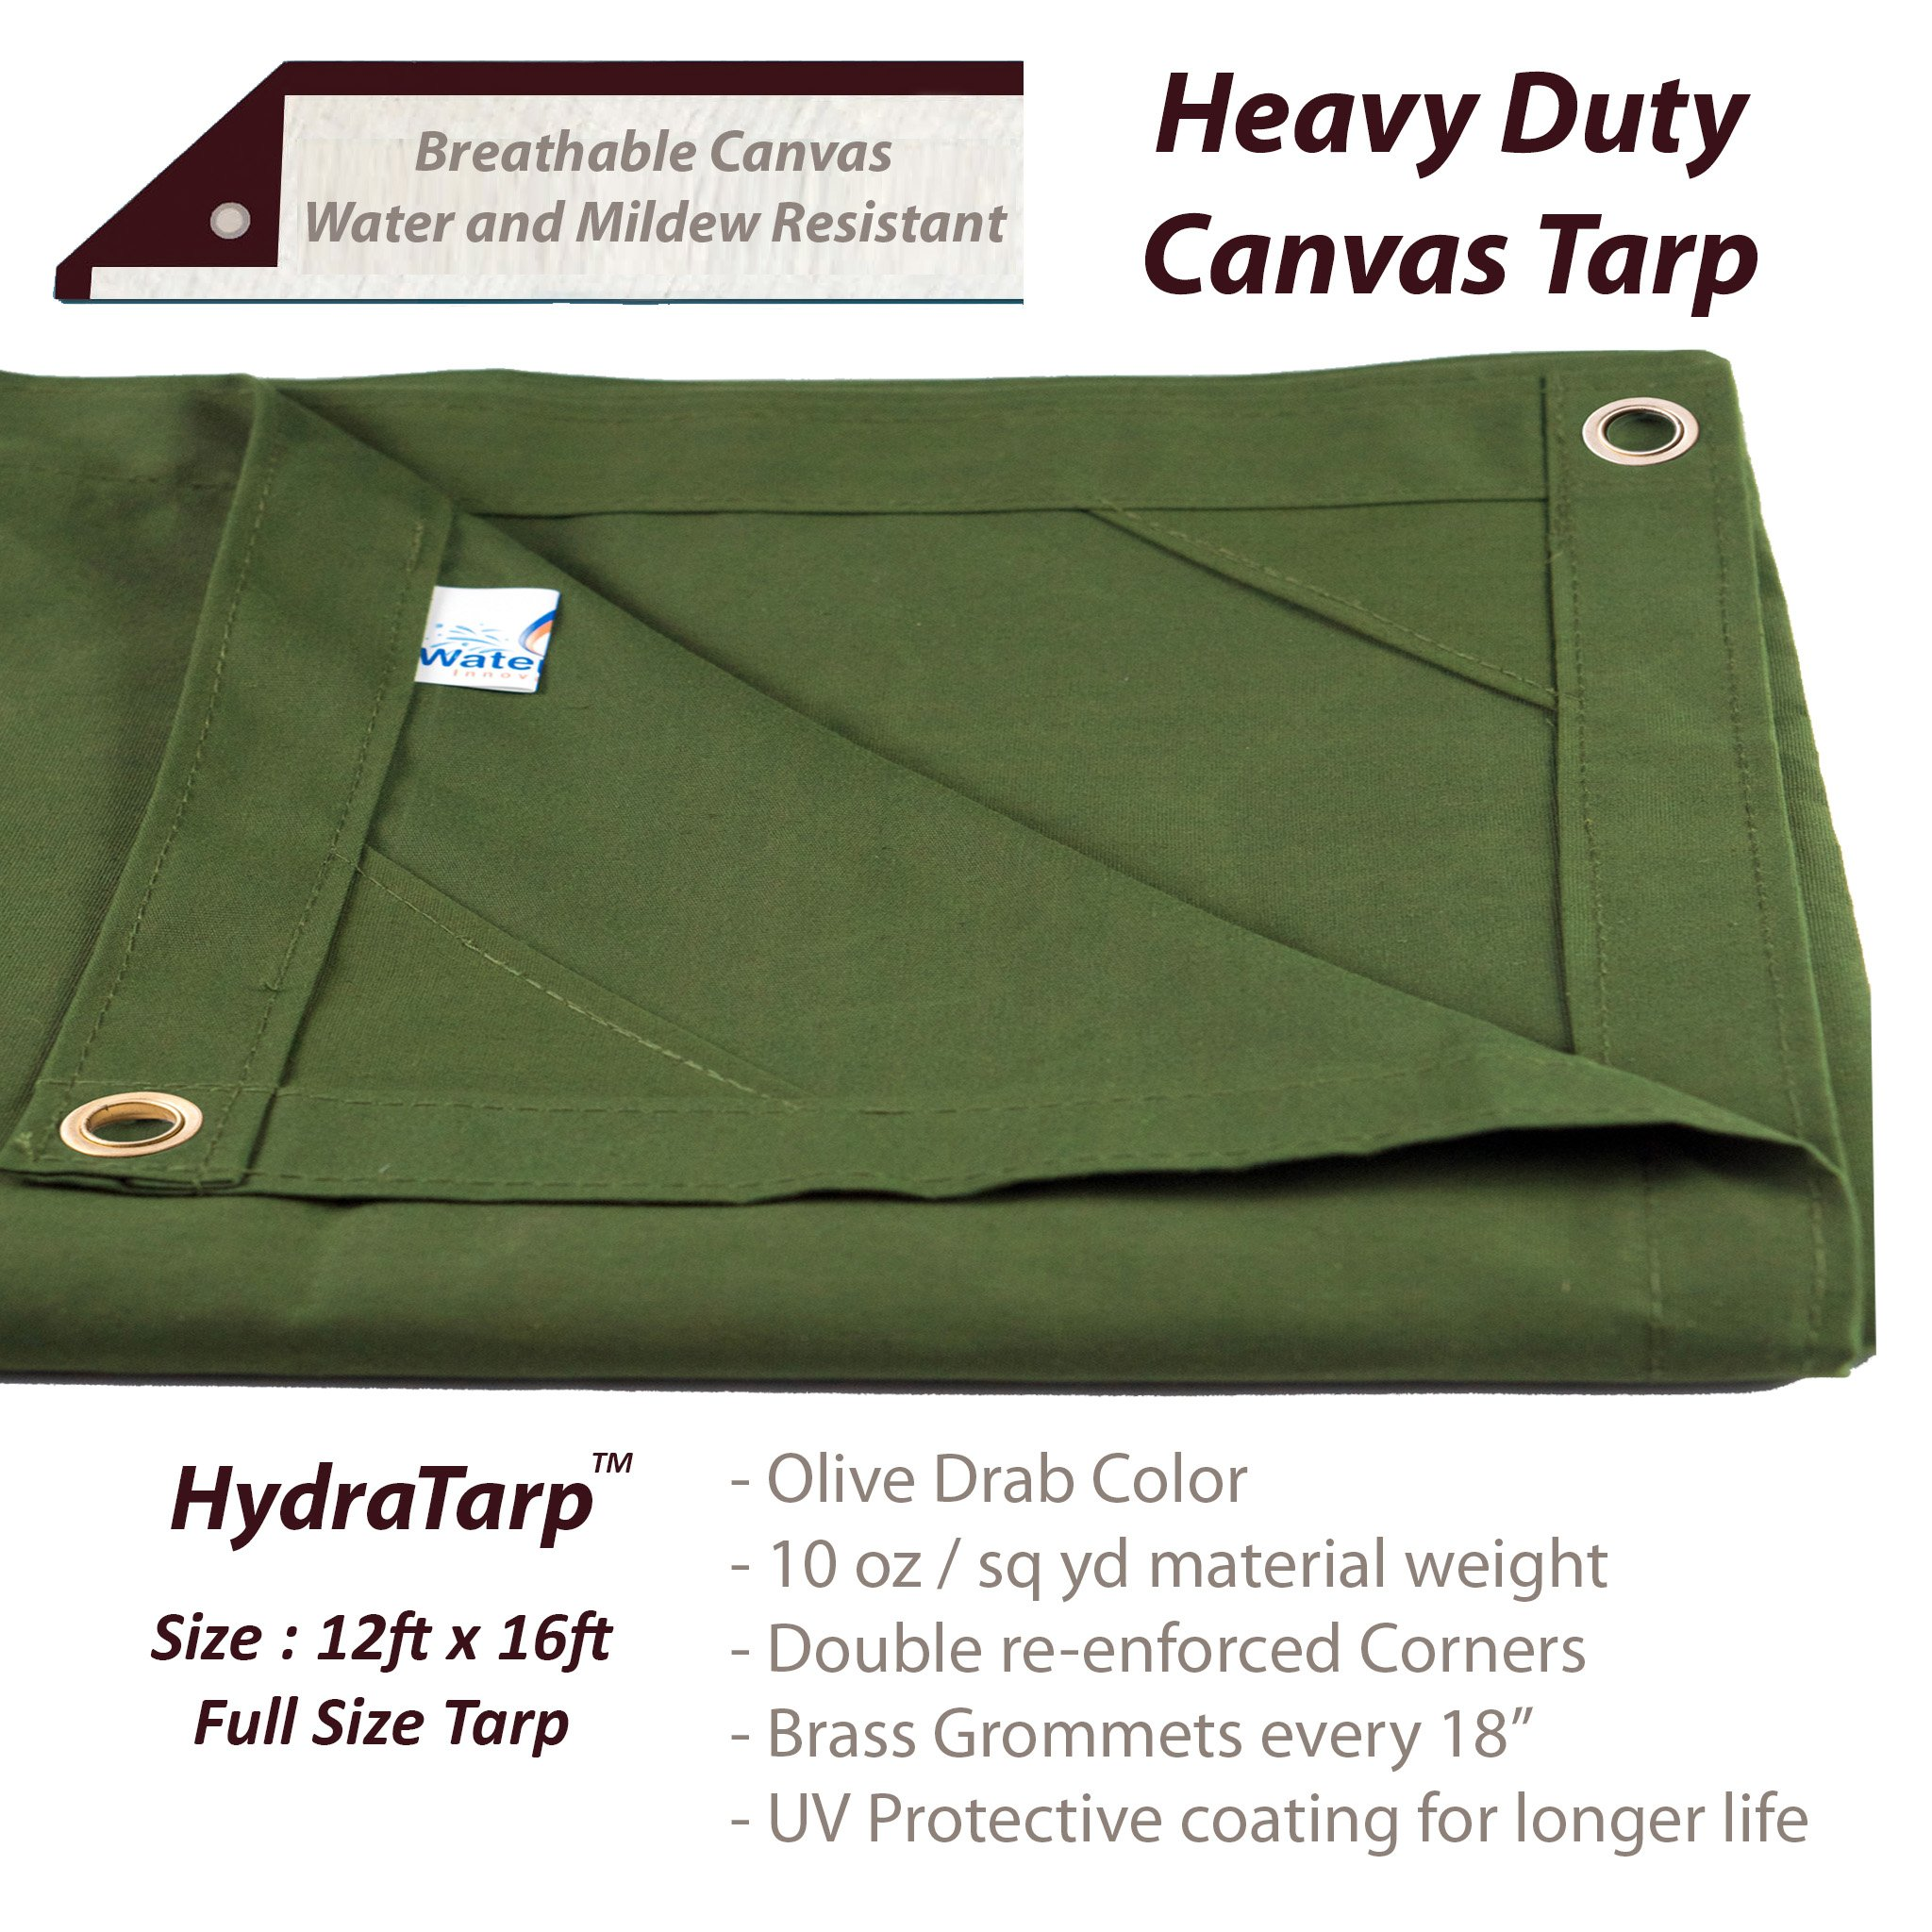 Watershed Innovations HydraTarp Canvas 12 Ft. X 16 Ft. Olive Drab Tarp - 10oz Weight by Watershed Innovations